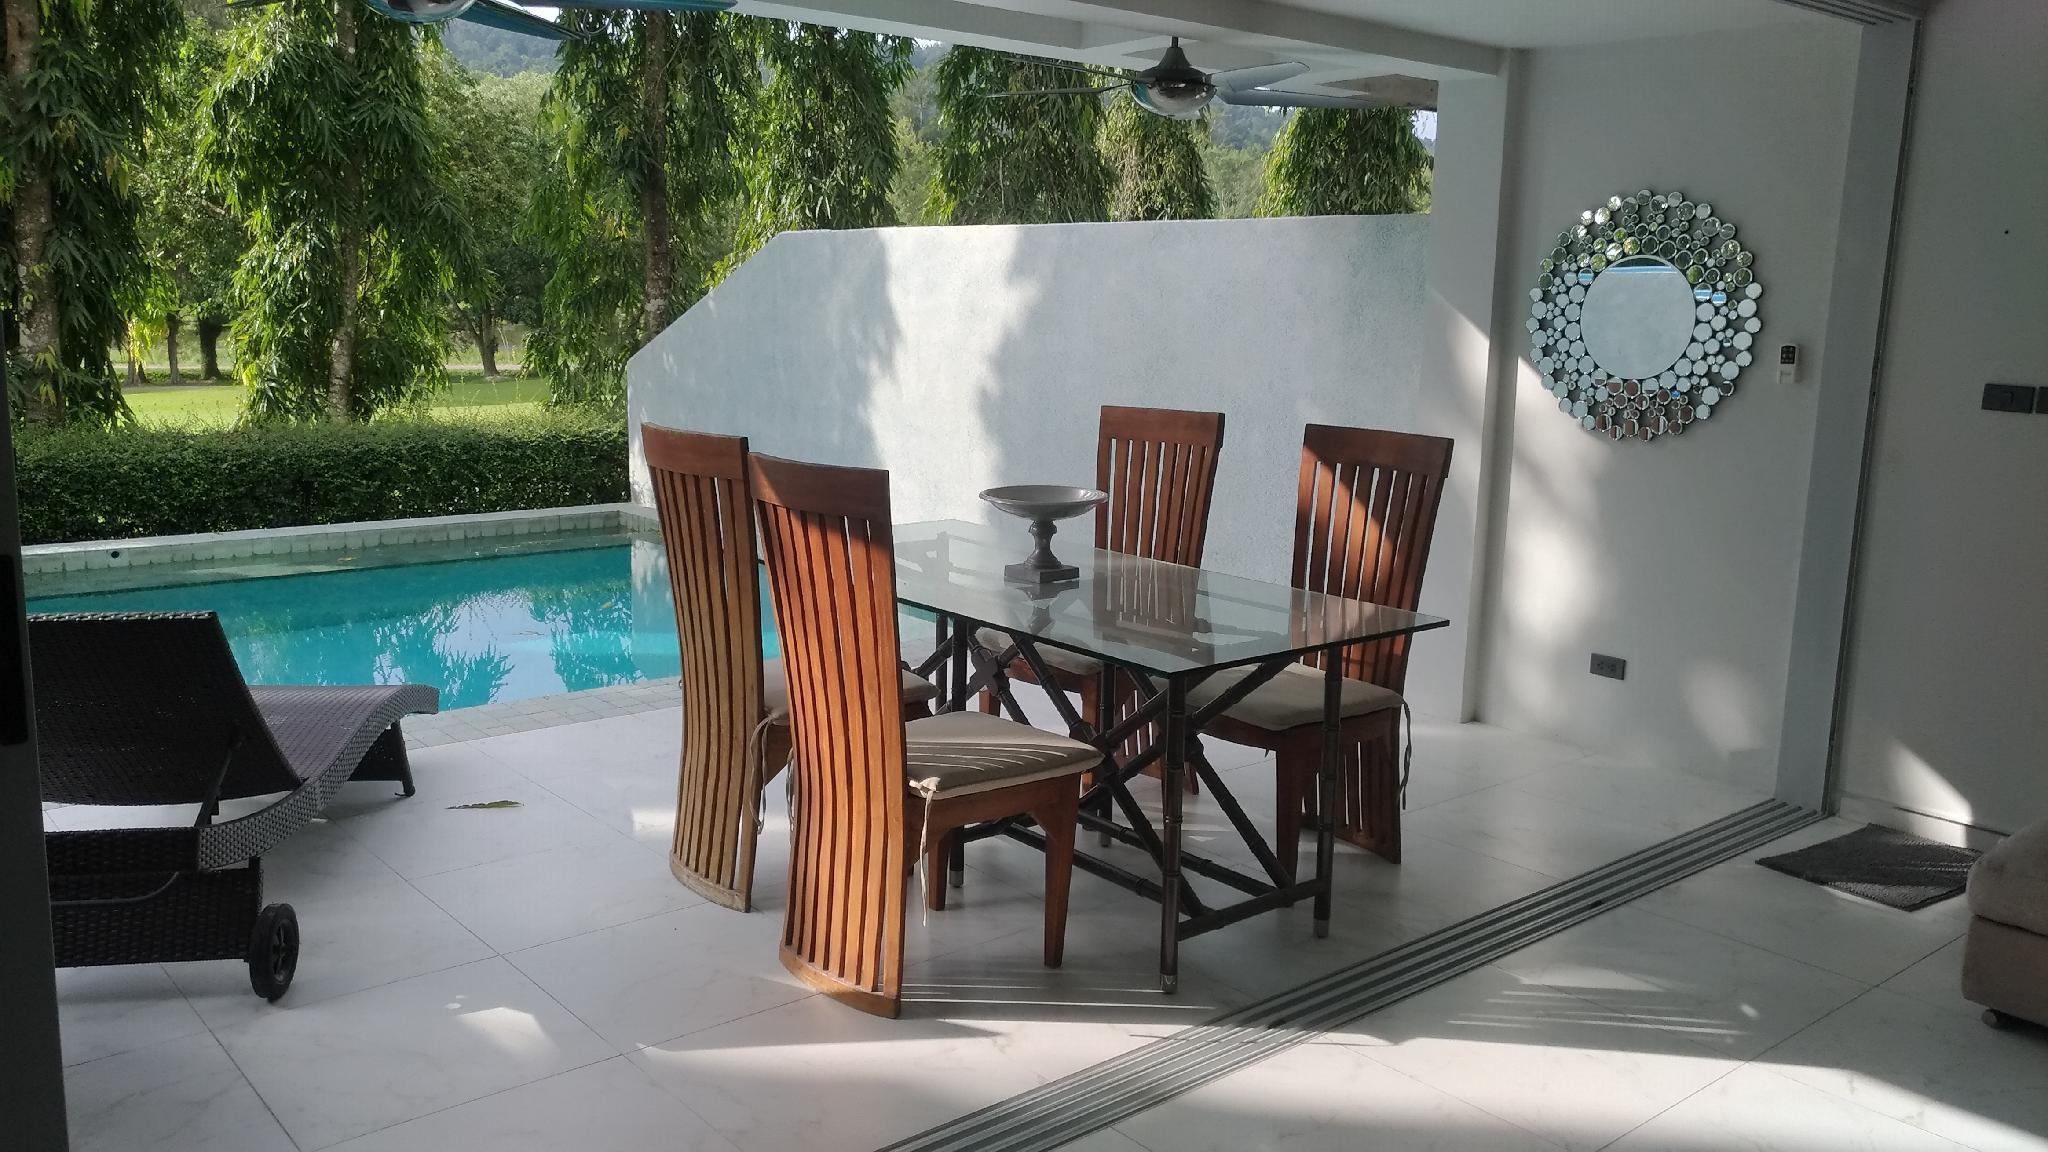 5 Bedroom Golf Villa with Private Pool (B) 5 Bedroom Golf Villa with Private Pool (B)